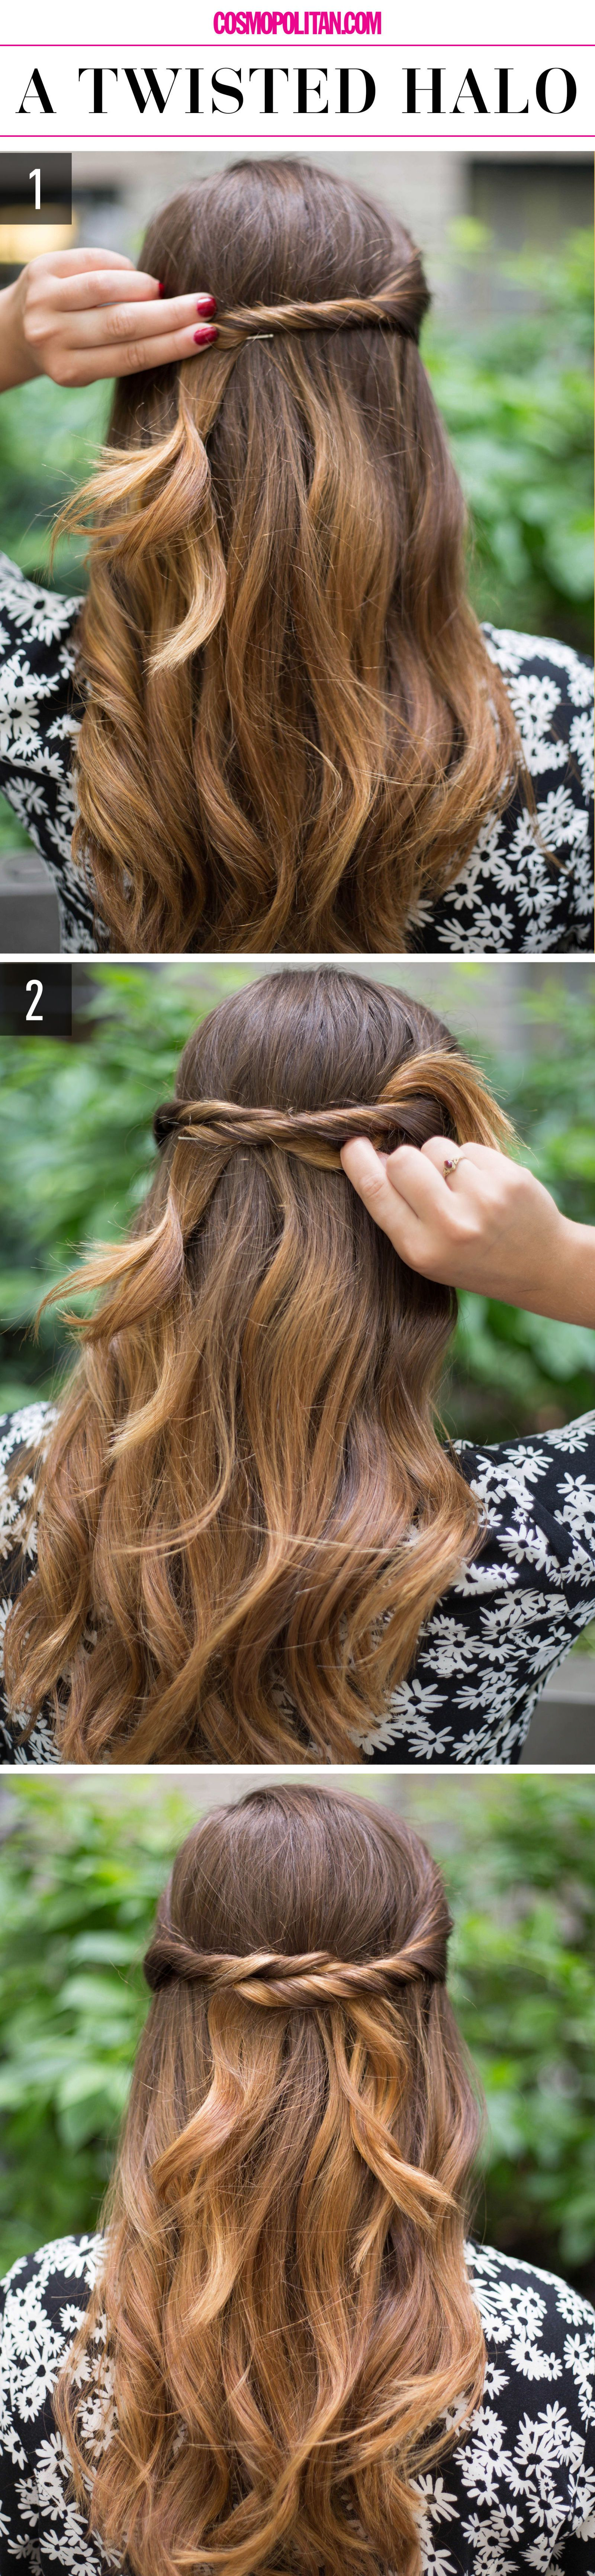 15 Quick and Easy Hairstyles for Long Hair 15 Quick and Easy Hairstyles for Long Hair new images